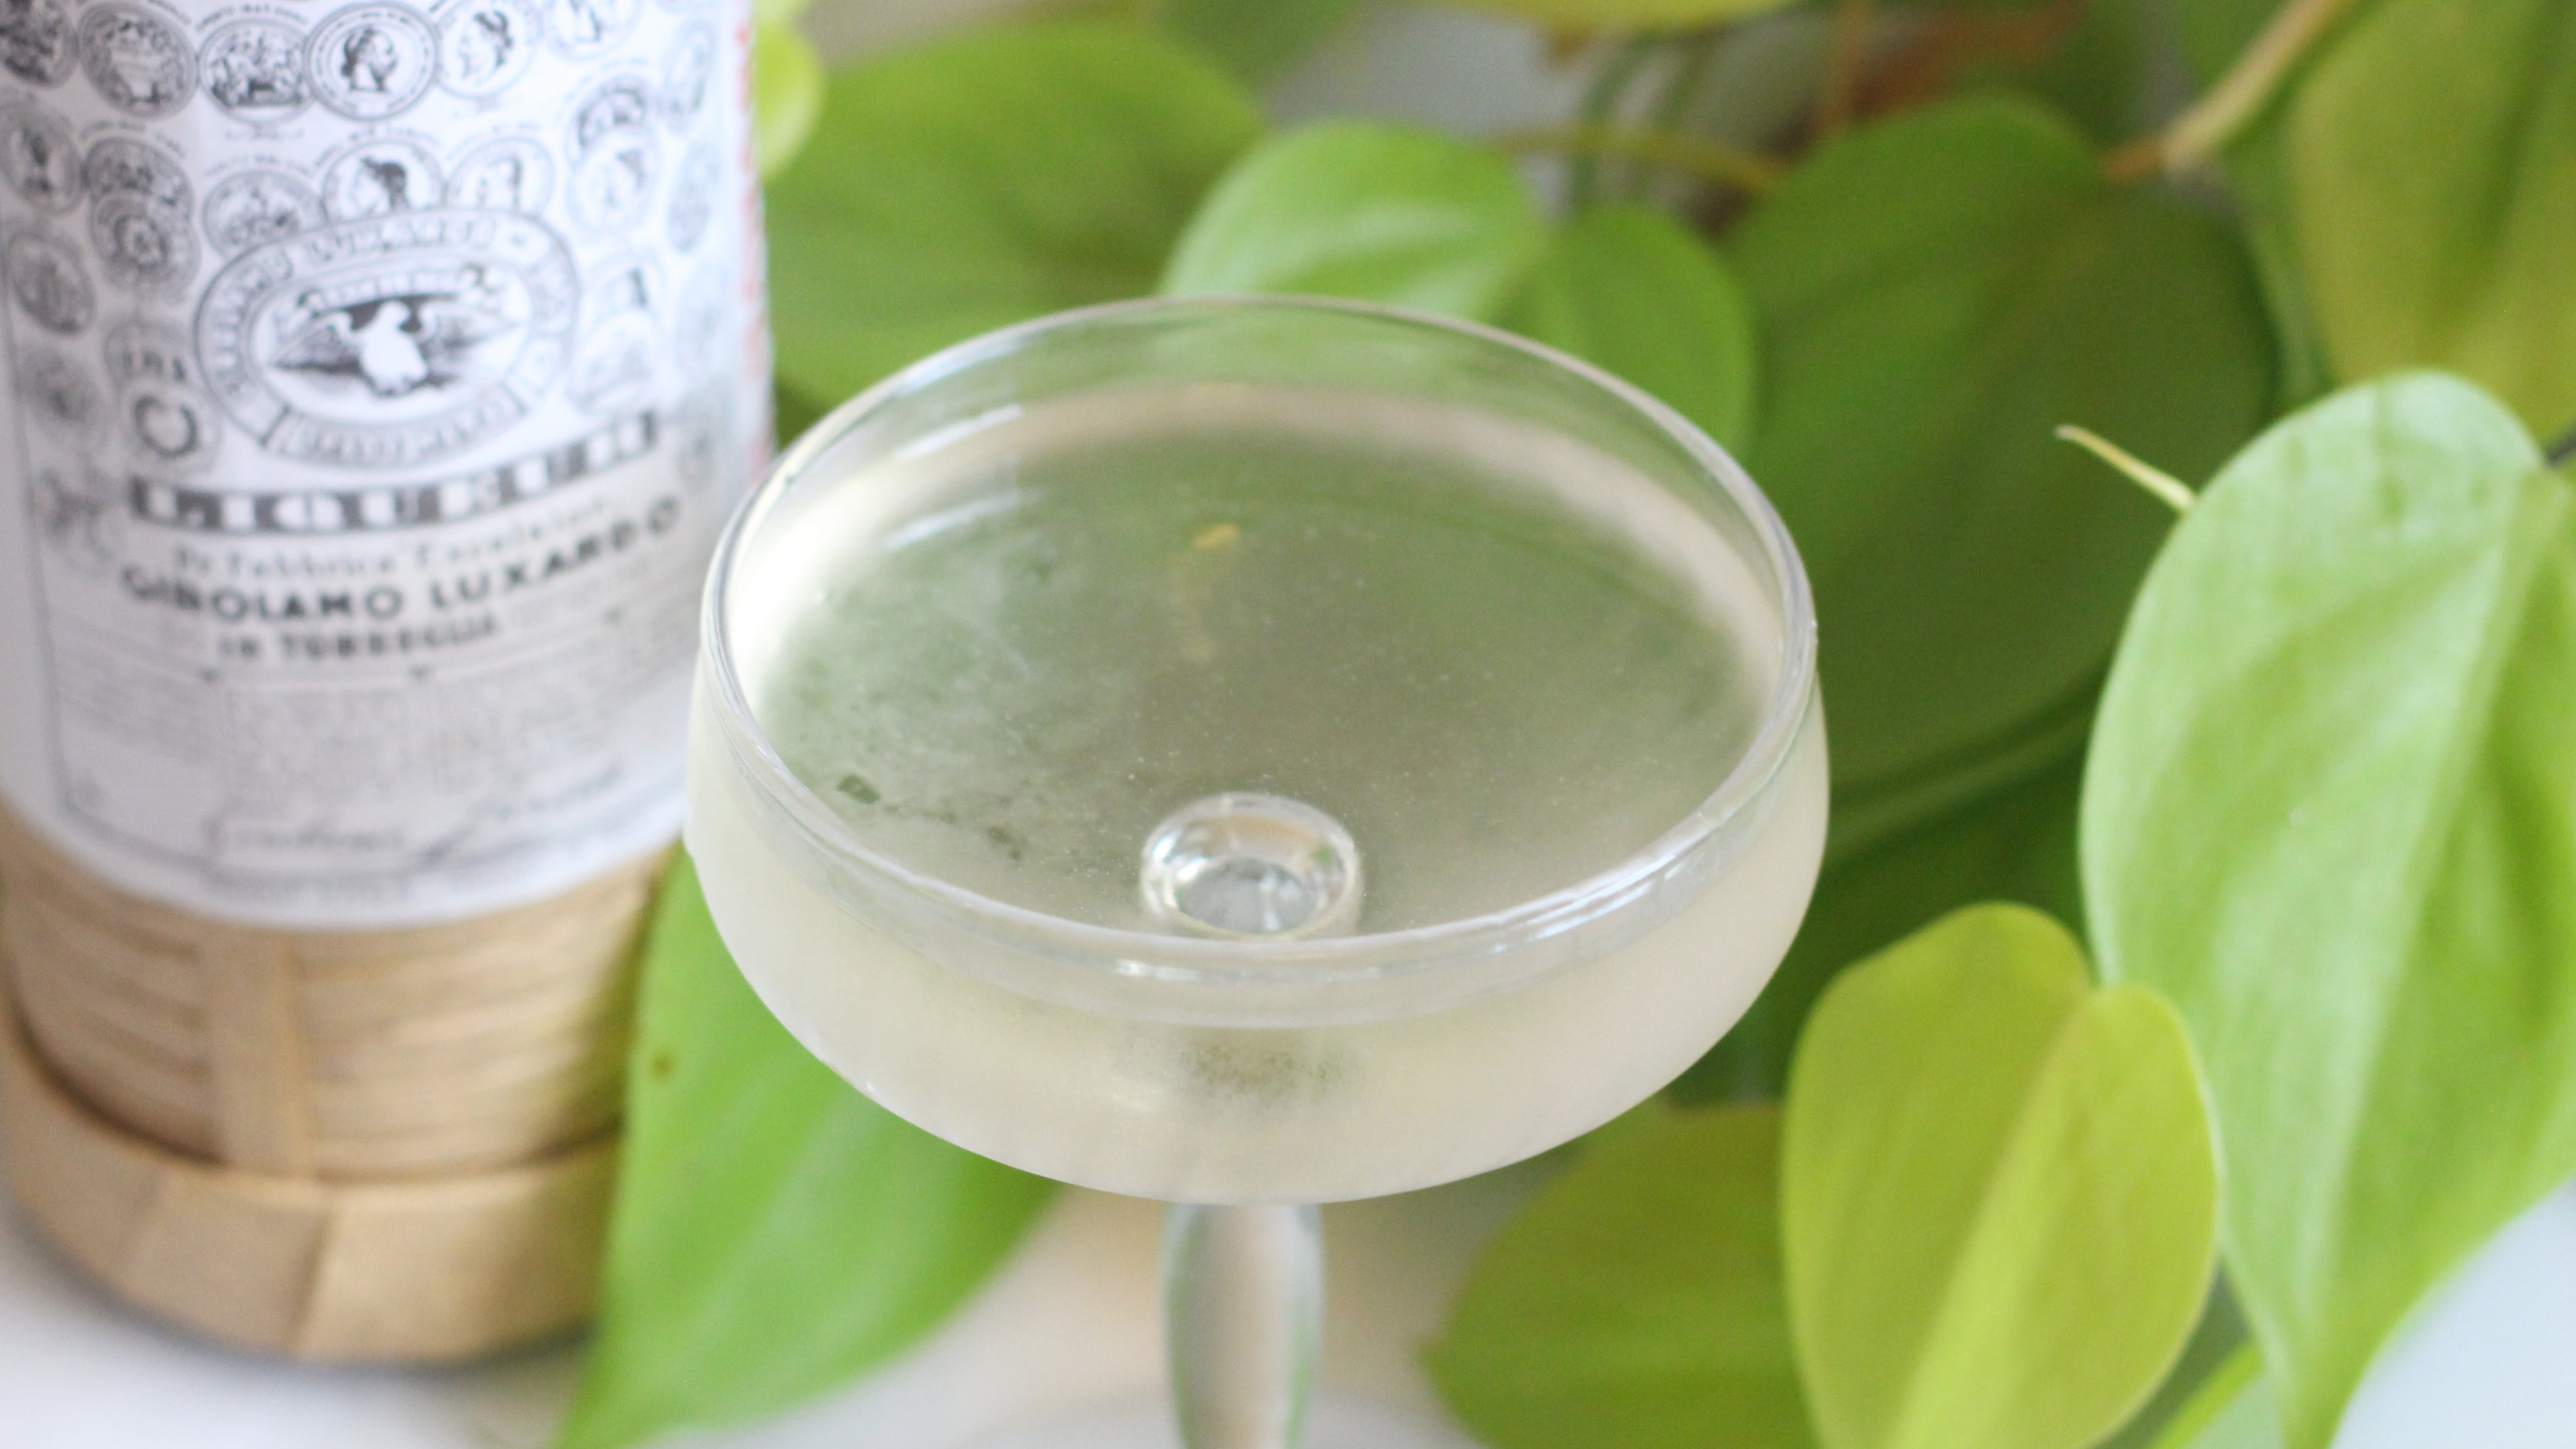 Settle In This Weekend With A Maraschino Martini